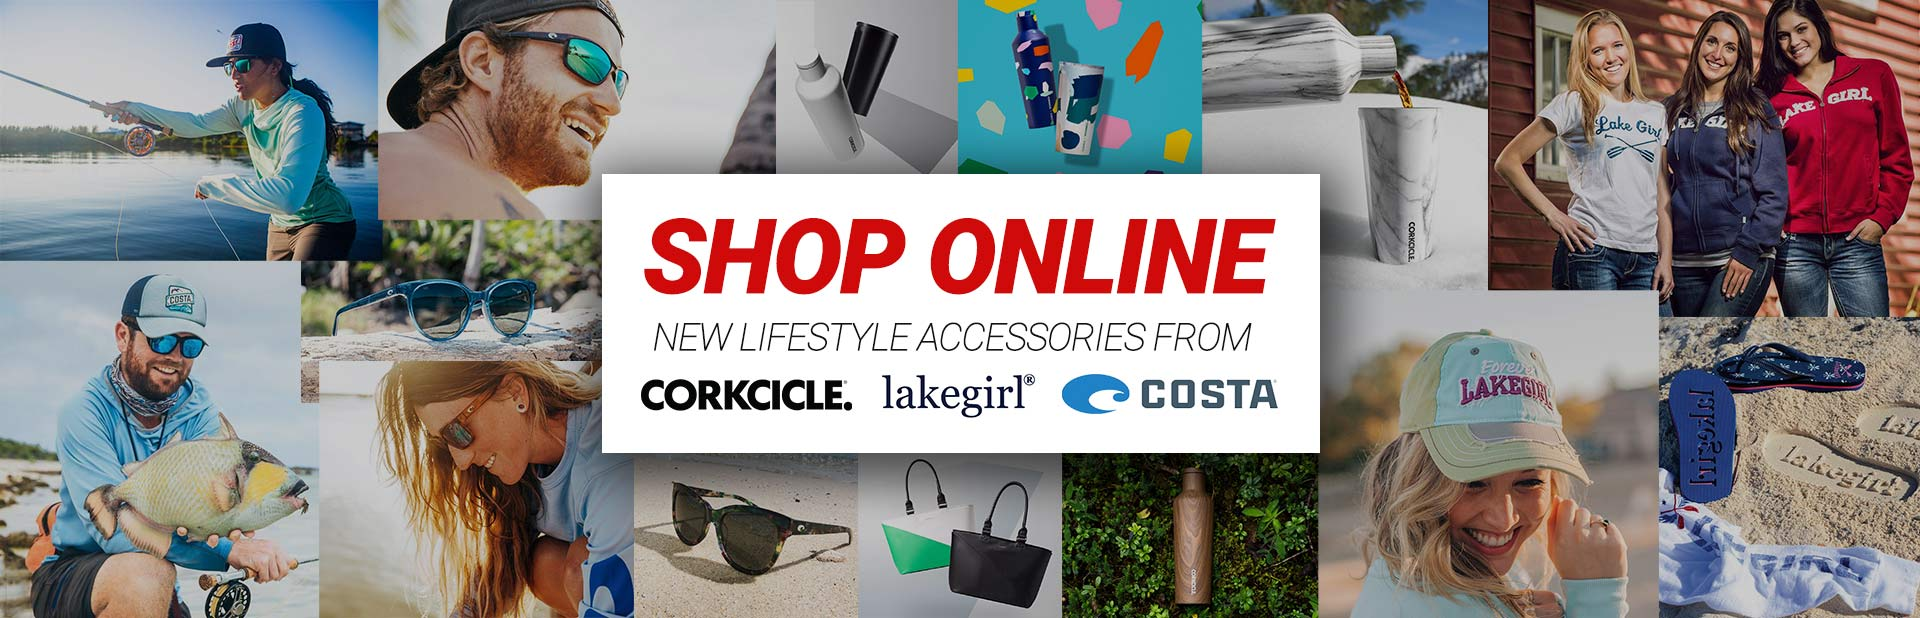 Shop Online Lifestyle Accessories from Corkcicle, Lakegirl, and Costa